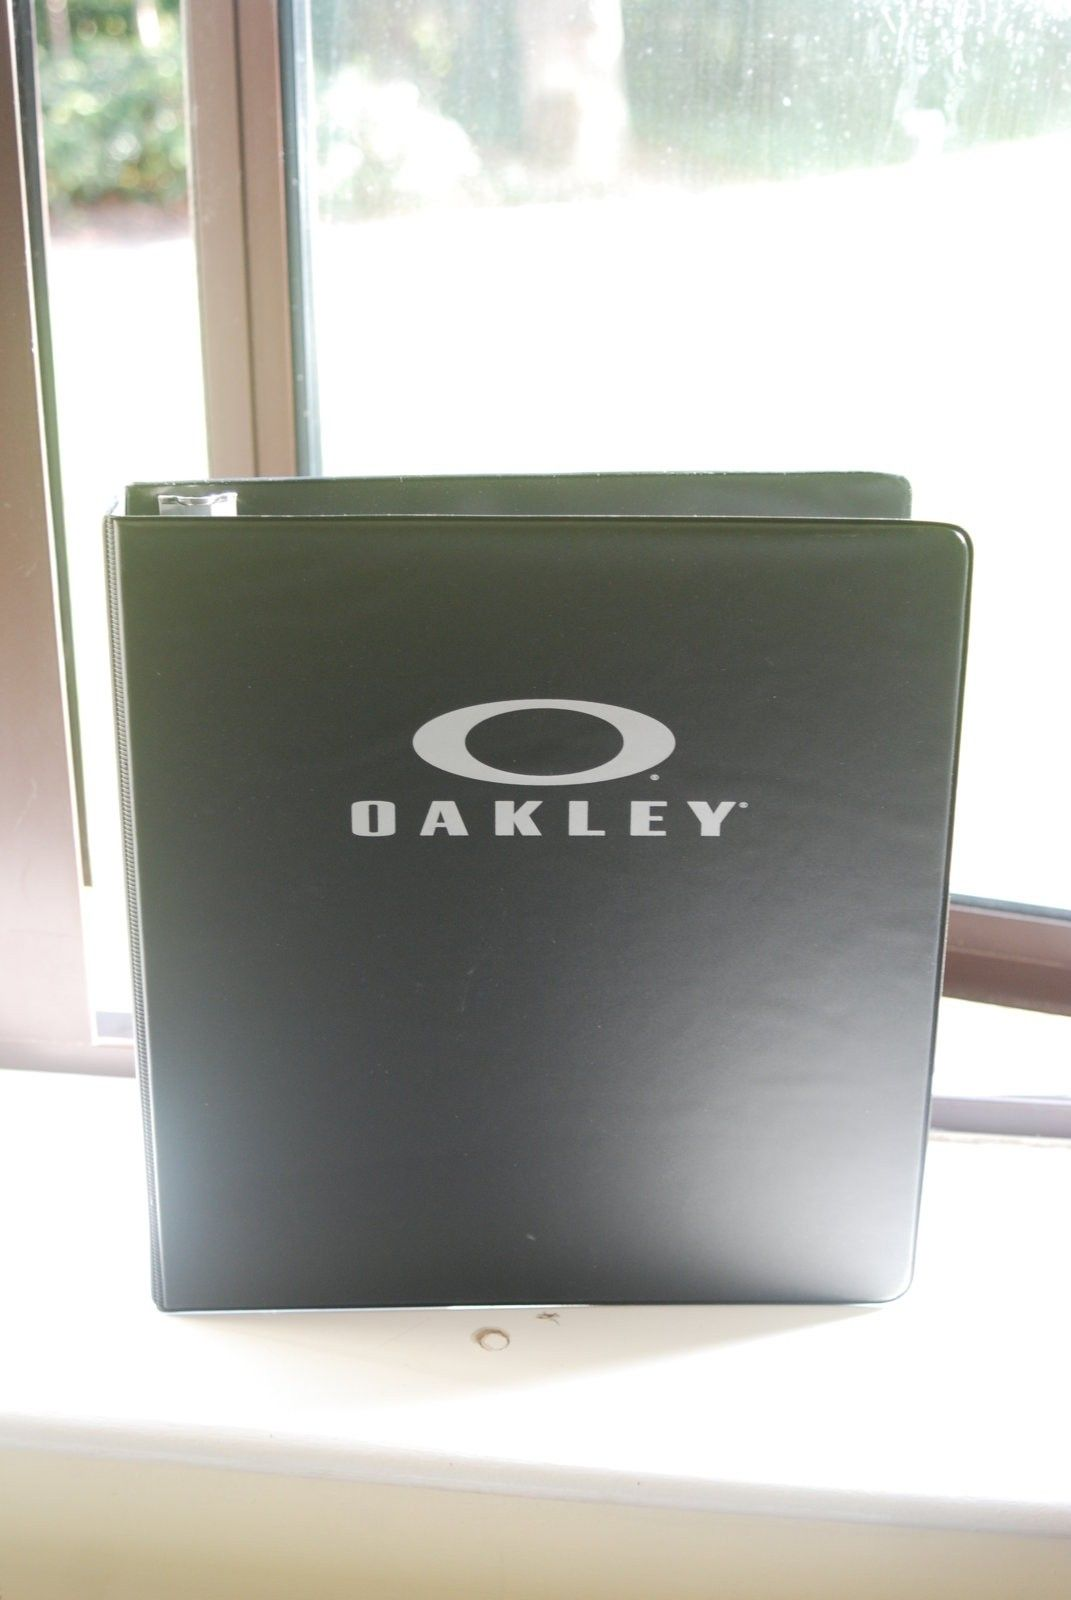 Oakley A4 folders / ring binder - DSC_5094.JPG